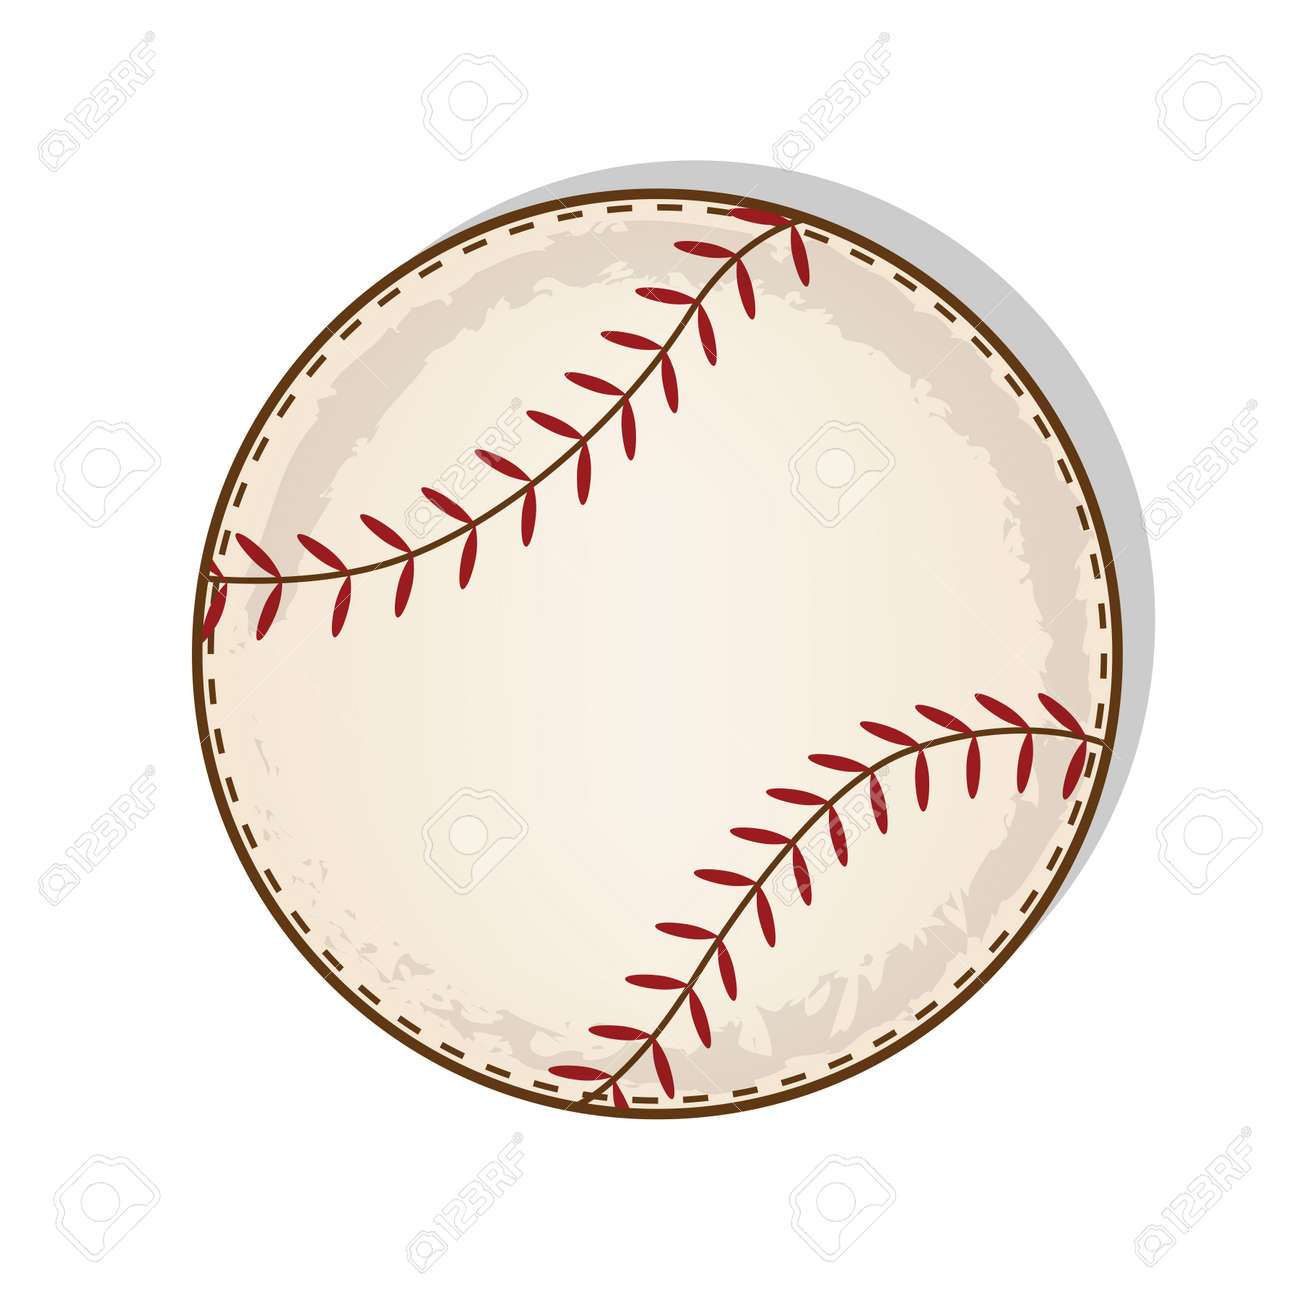 Aged Vintage Baseball Vector On A Transparent Background Stock